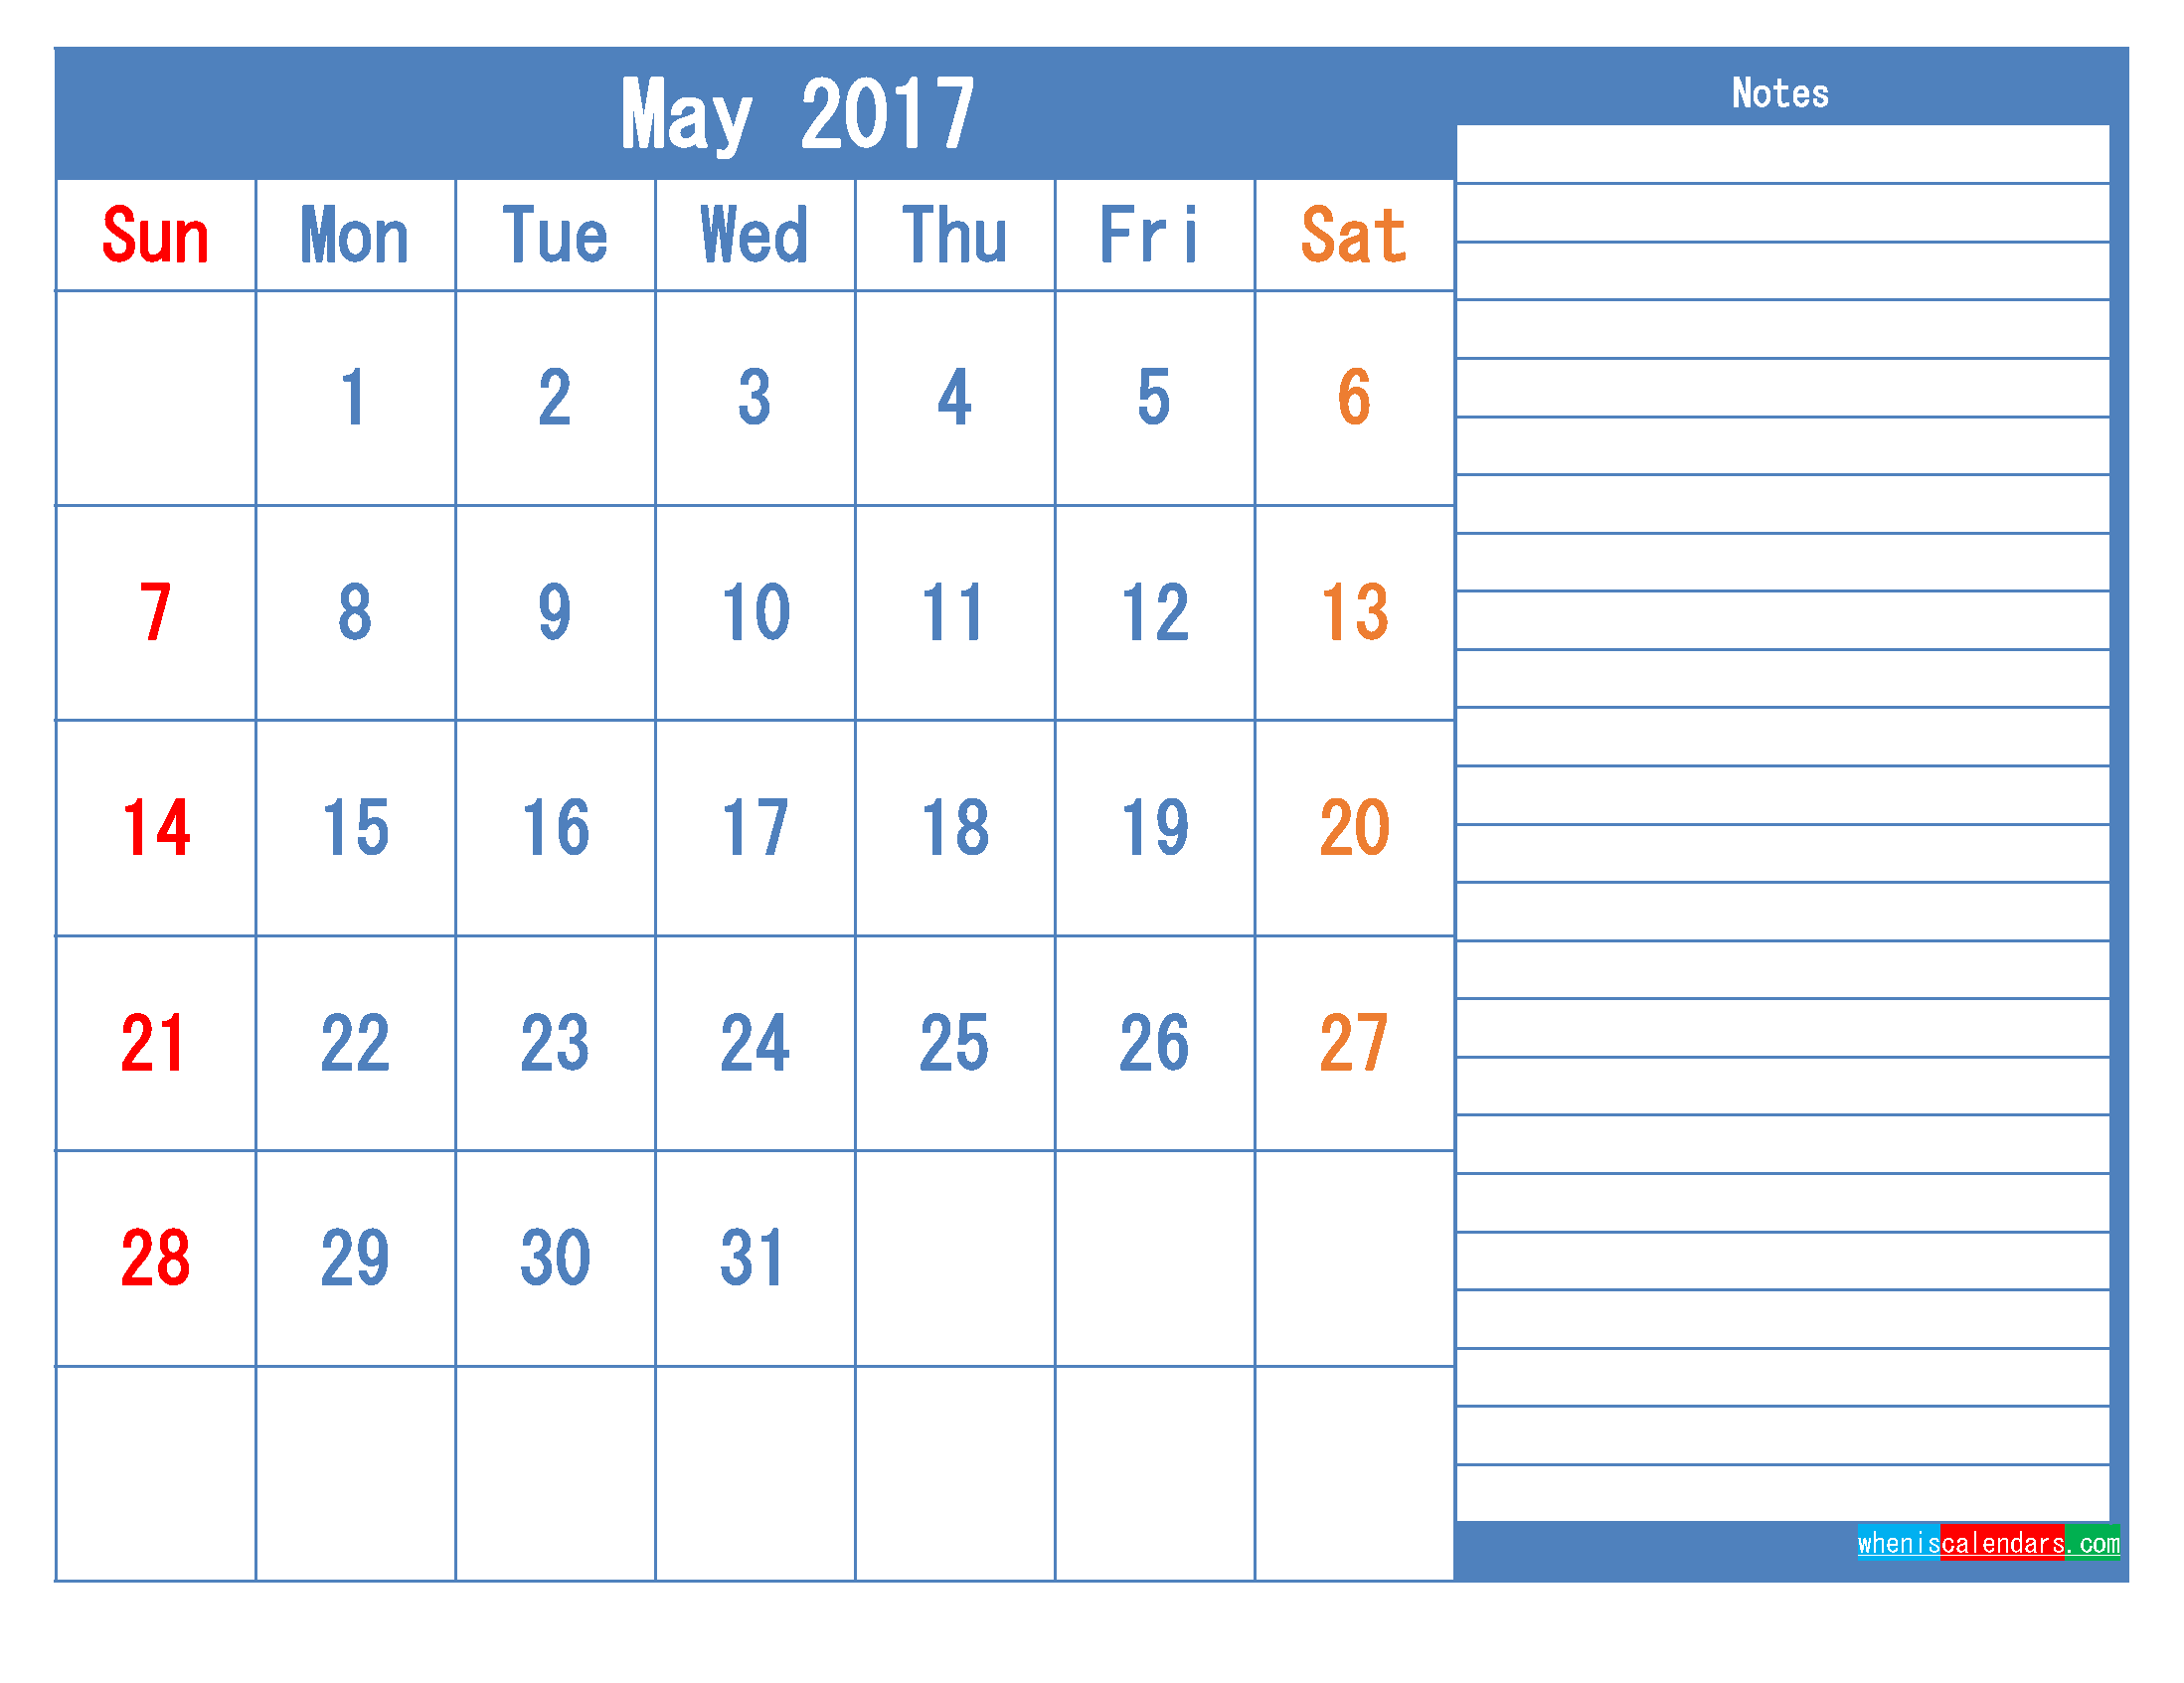 Printable Calendar 2017 May Monthly Calendar Template as PDF